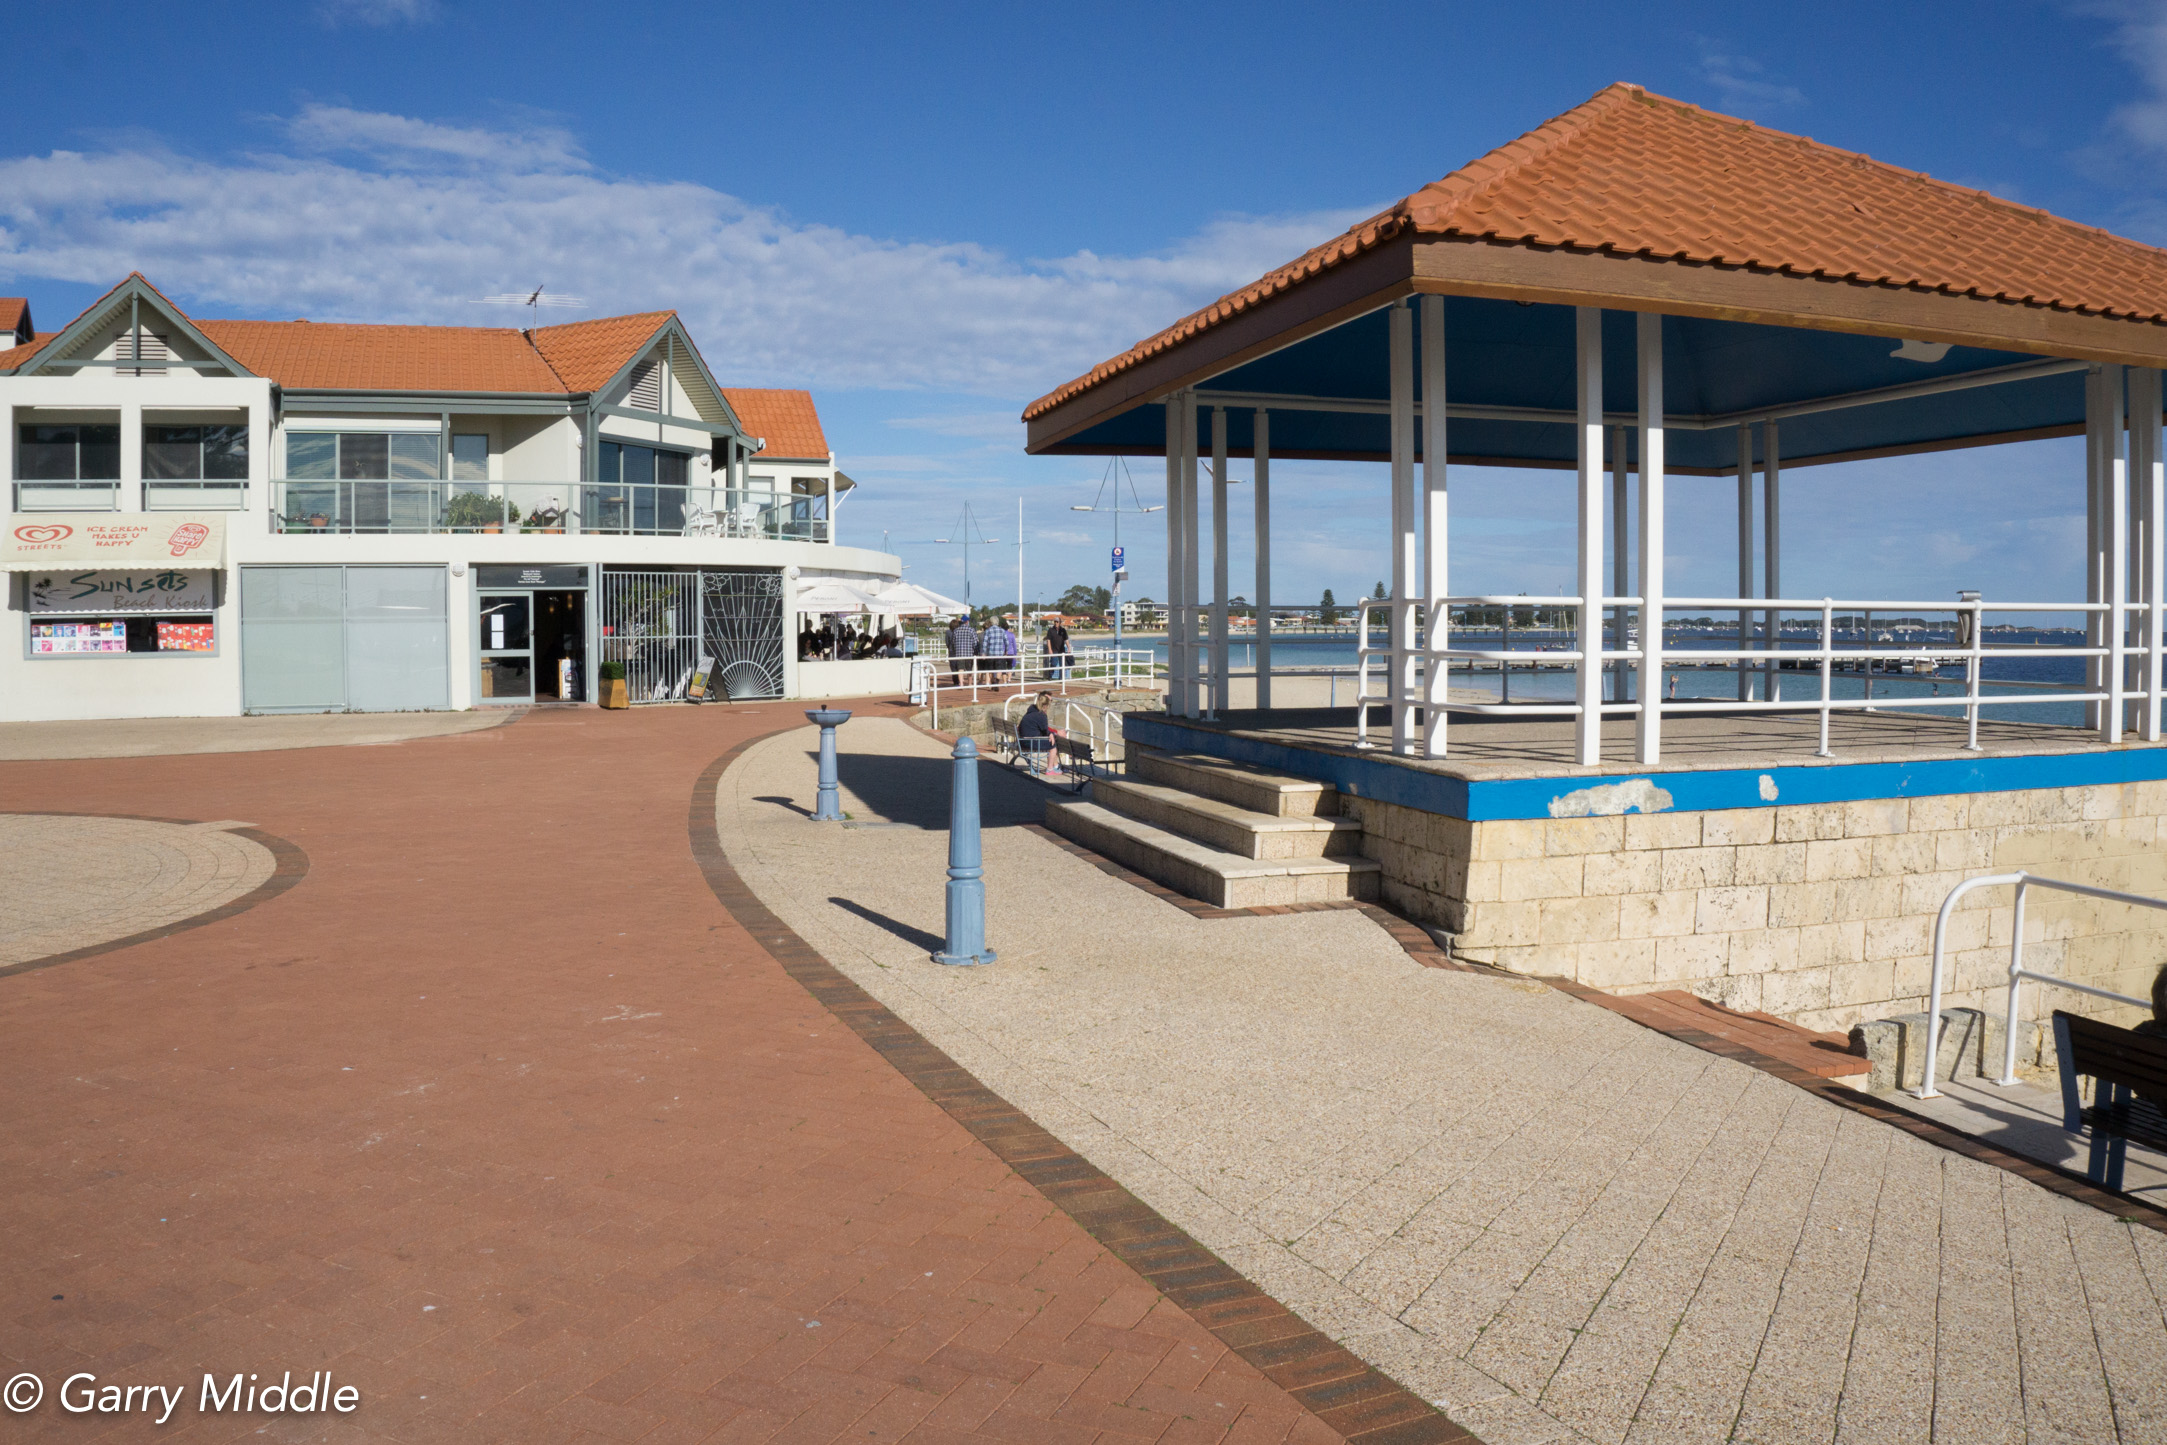 Plate 1: Starting point of the walk - at the beach front at the end of Railway Terrace carpark